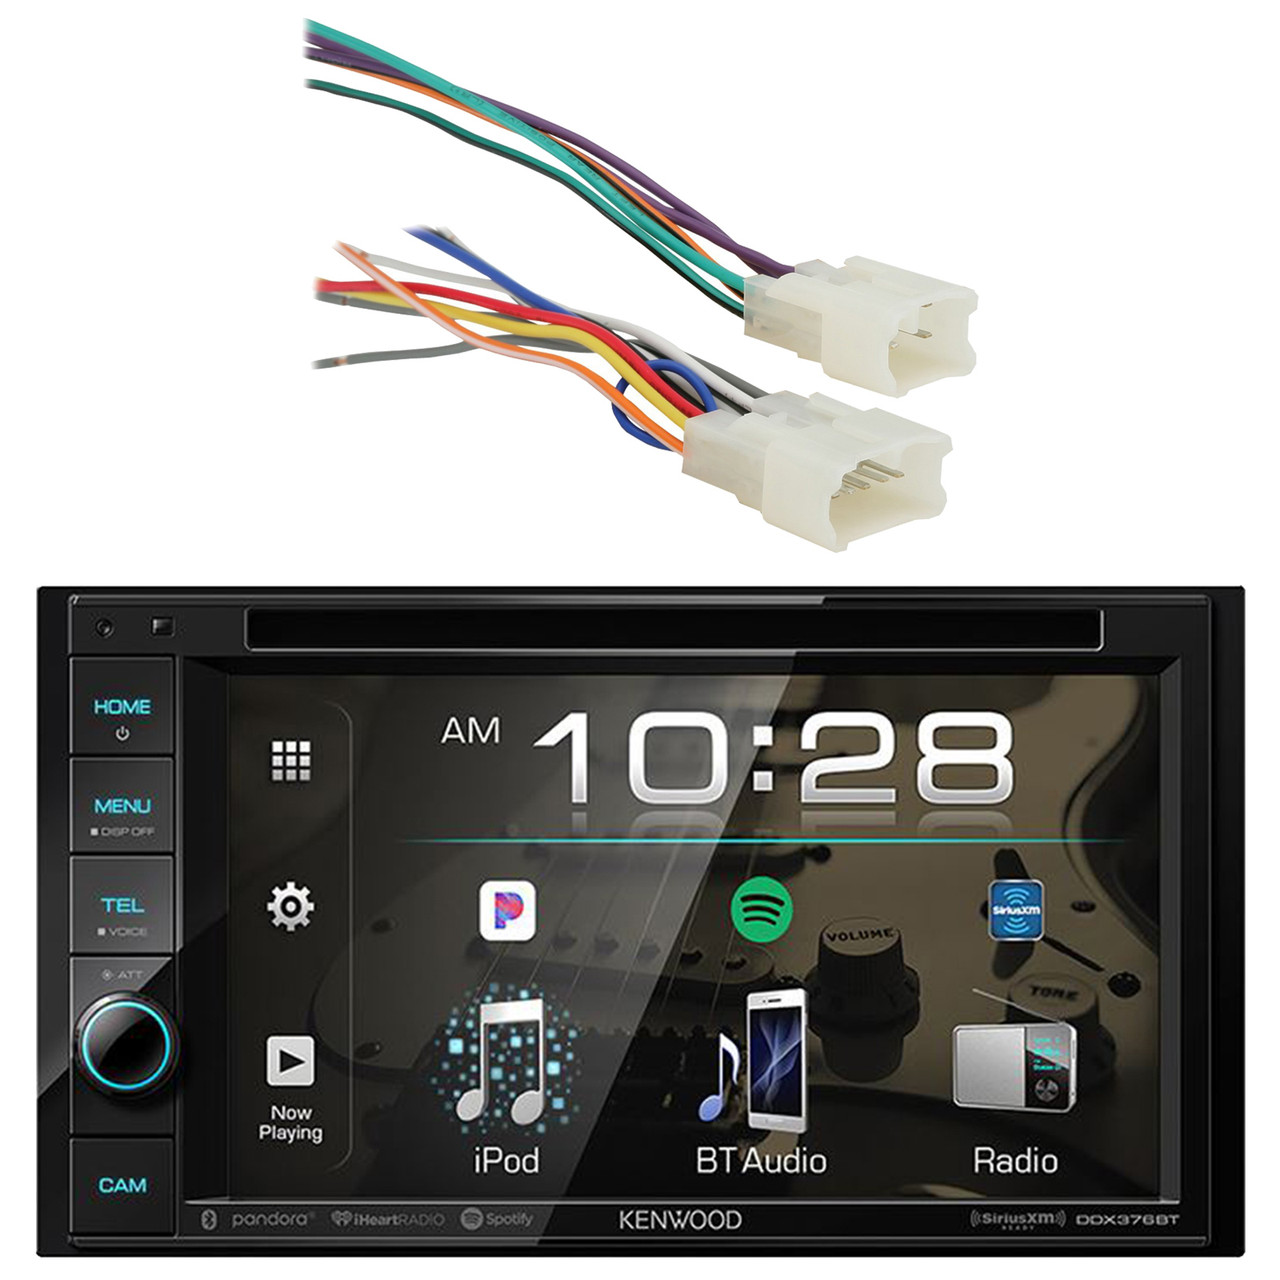 metra stereo wiring harness kenwood double din usb bluetooth dvd multimedia am fm radio metra stereo wiring harness lc-gmrc-01 kenwood double din usb bluetooth dvd